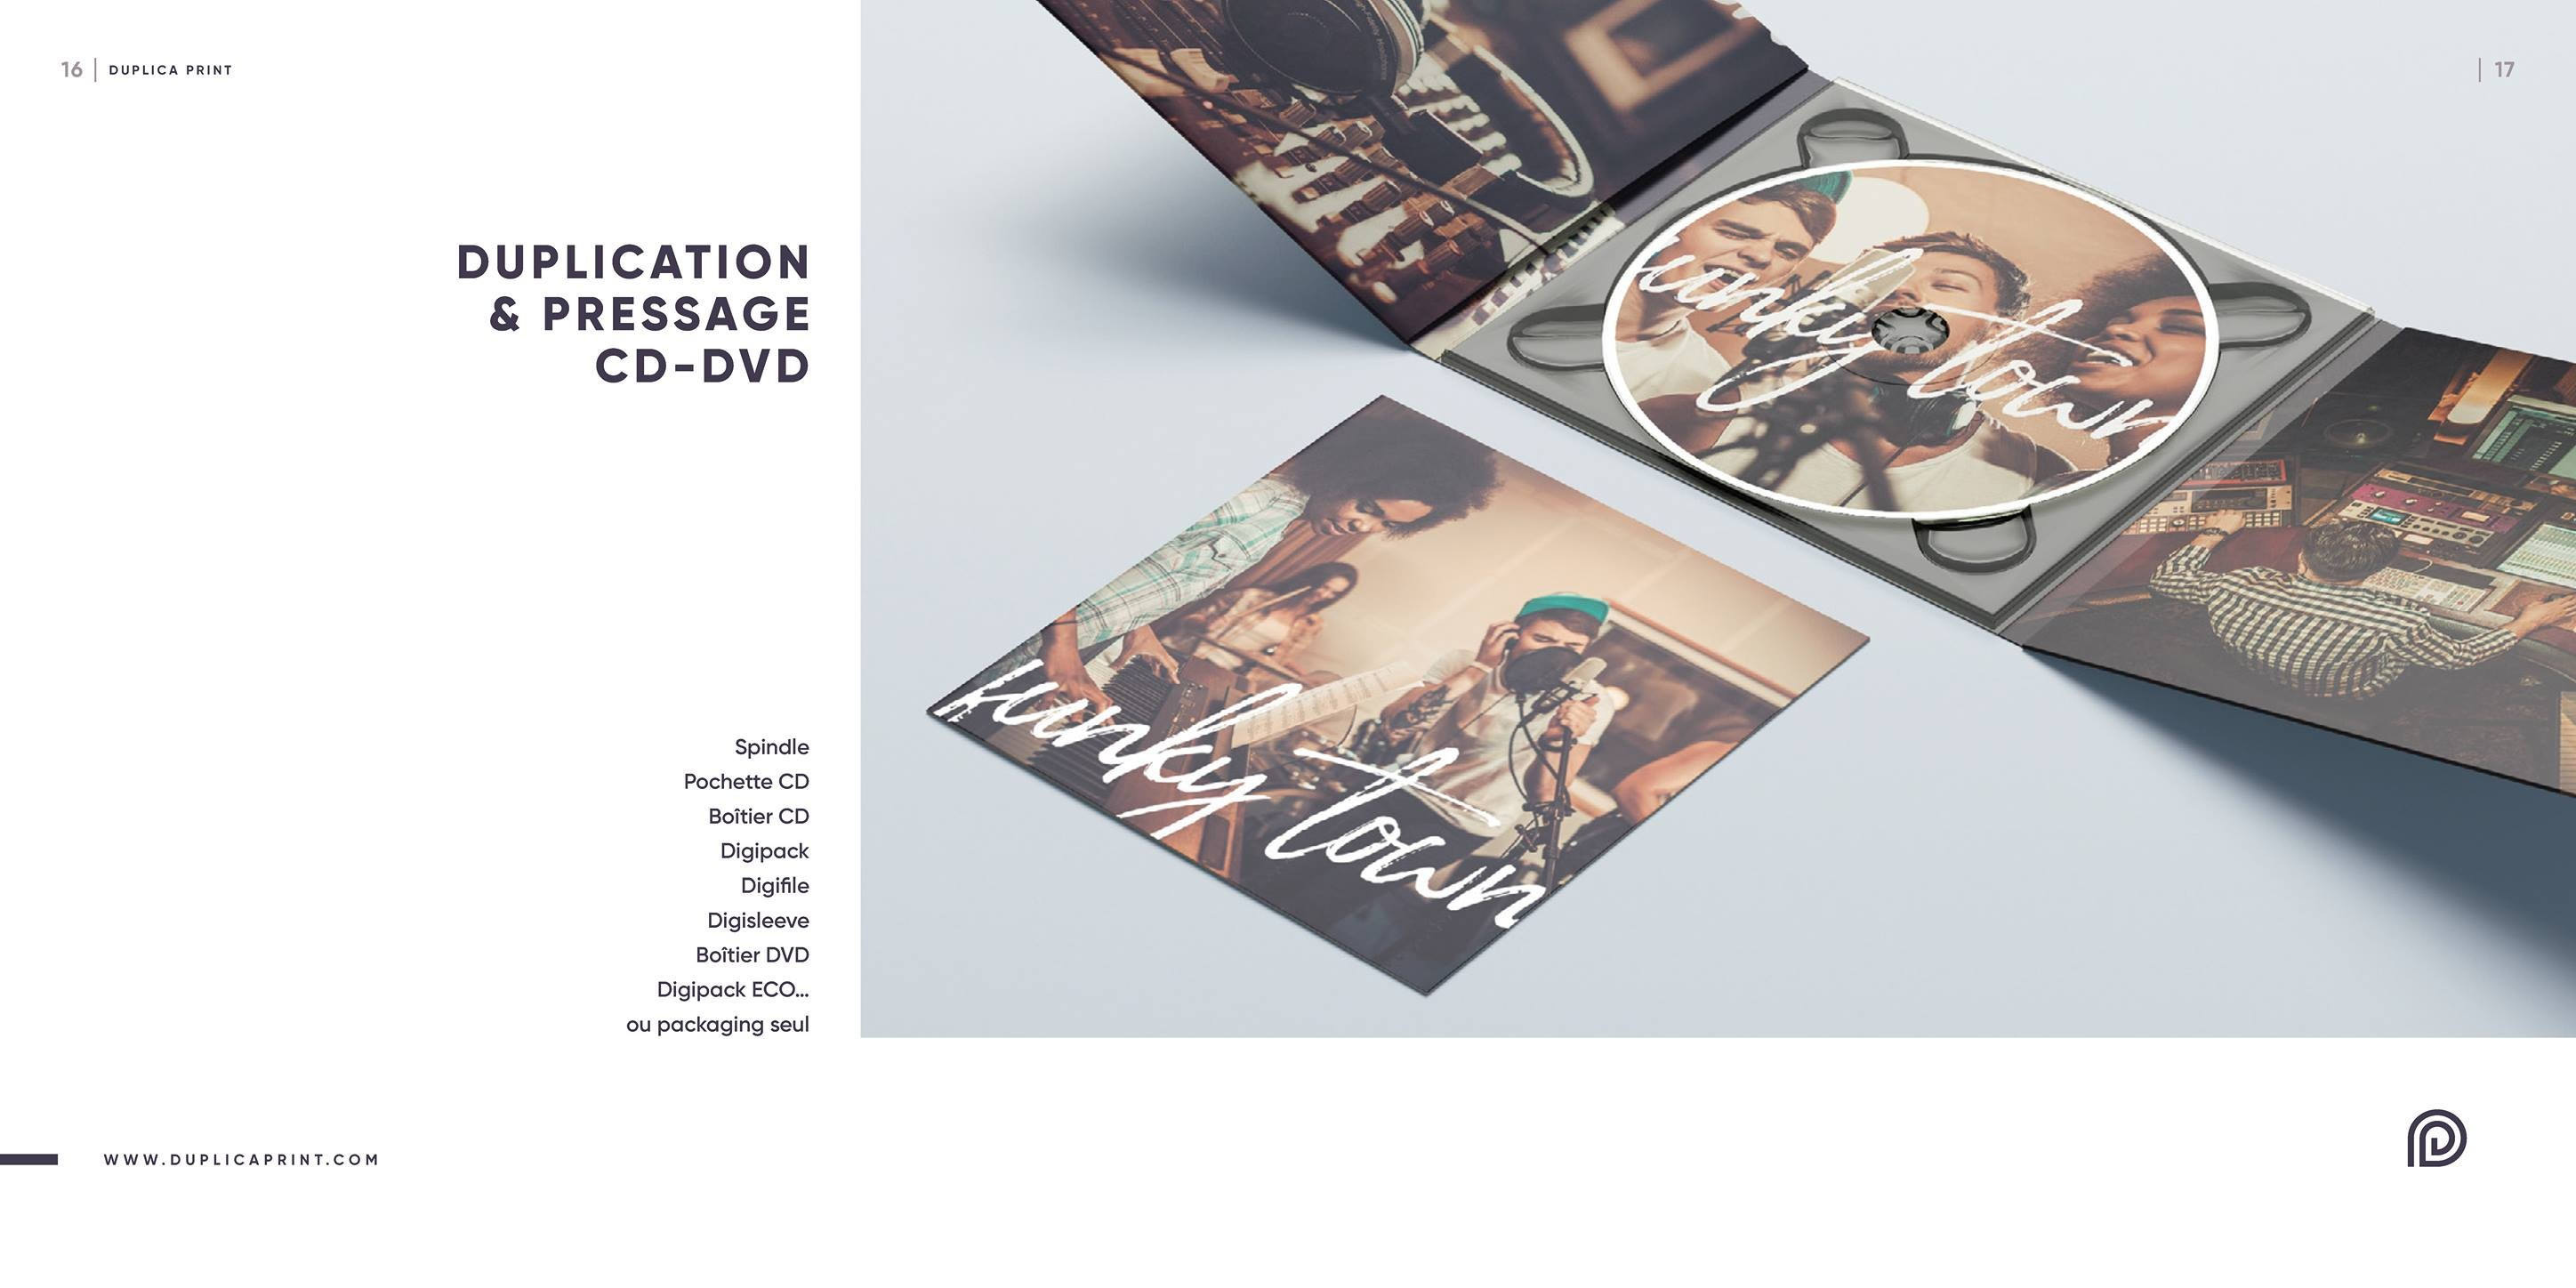 Duplication & pressage CD / DVD